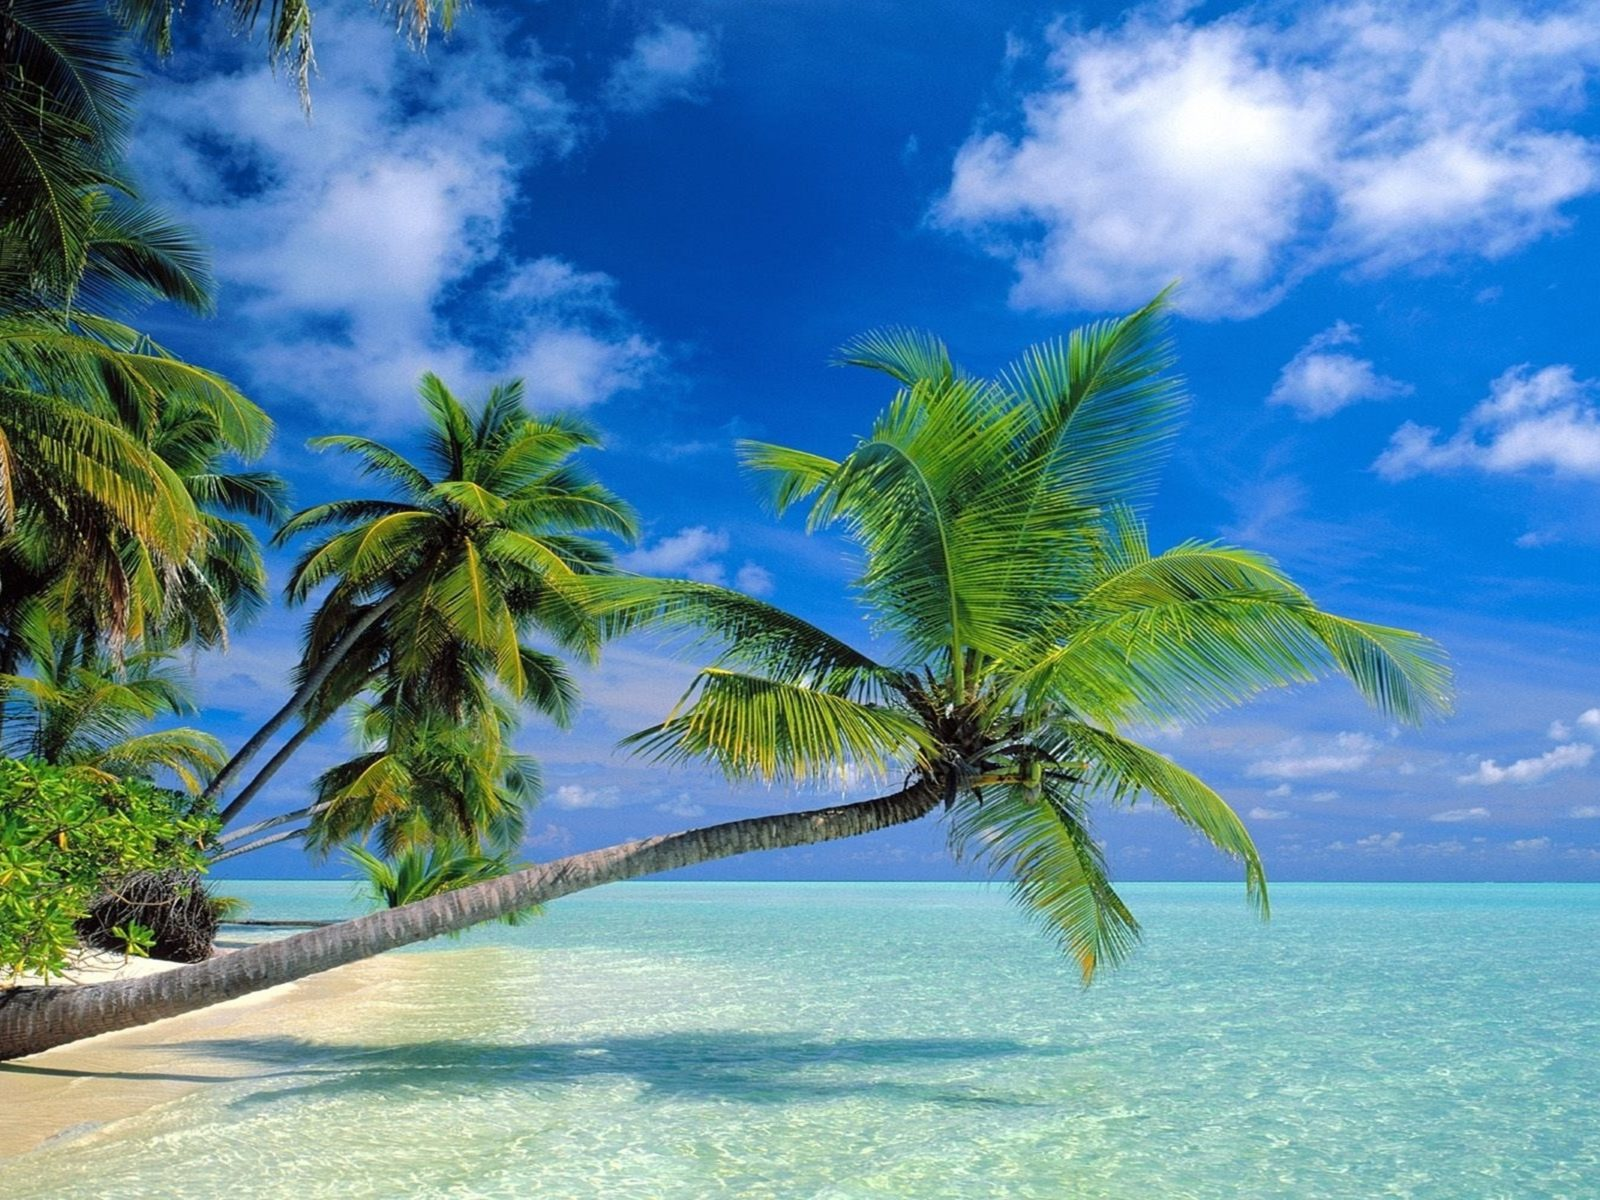 Water Iphone Wallpaper Coconut Trees Beach 2560x1600 Wallpapers13 Com